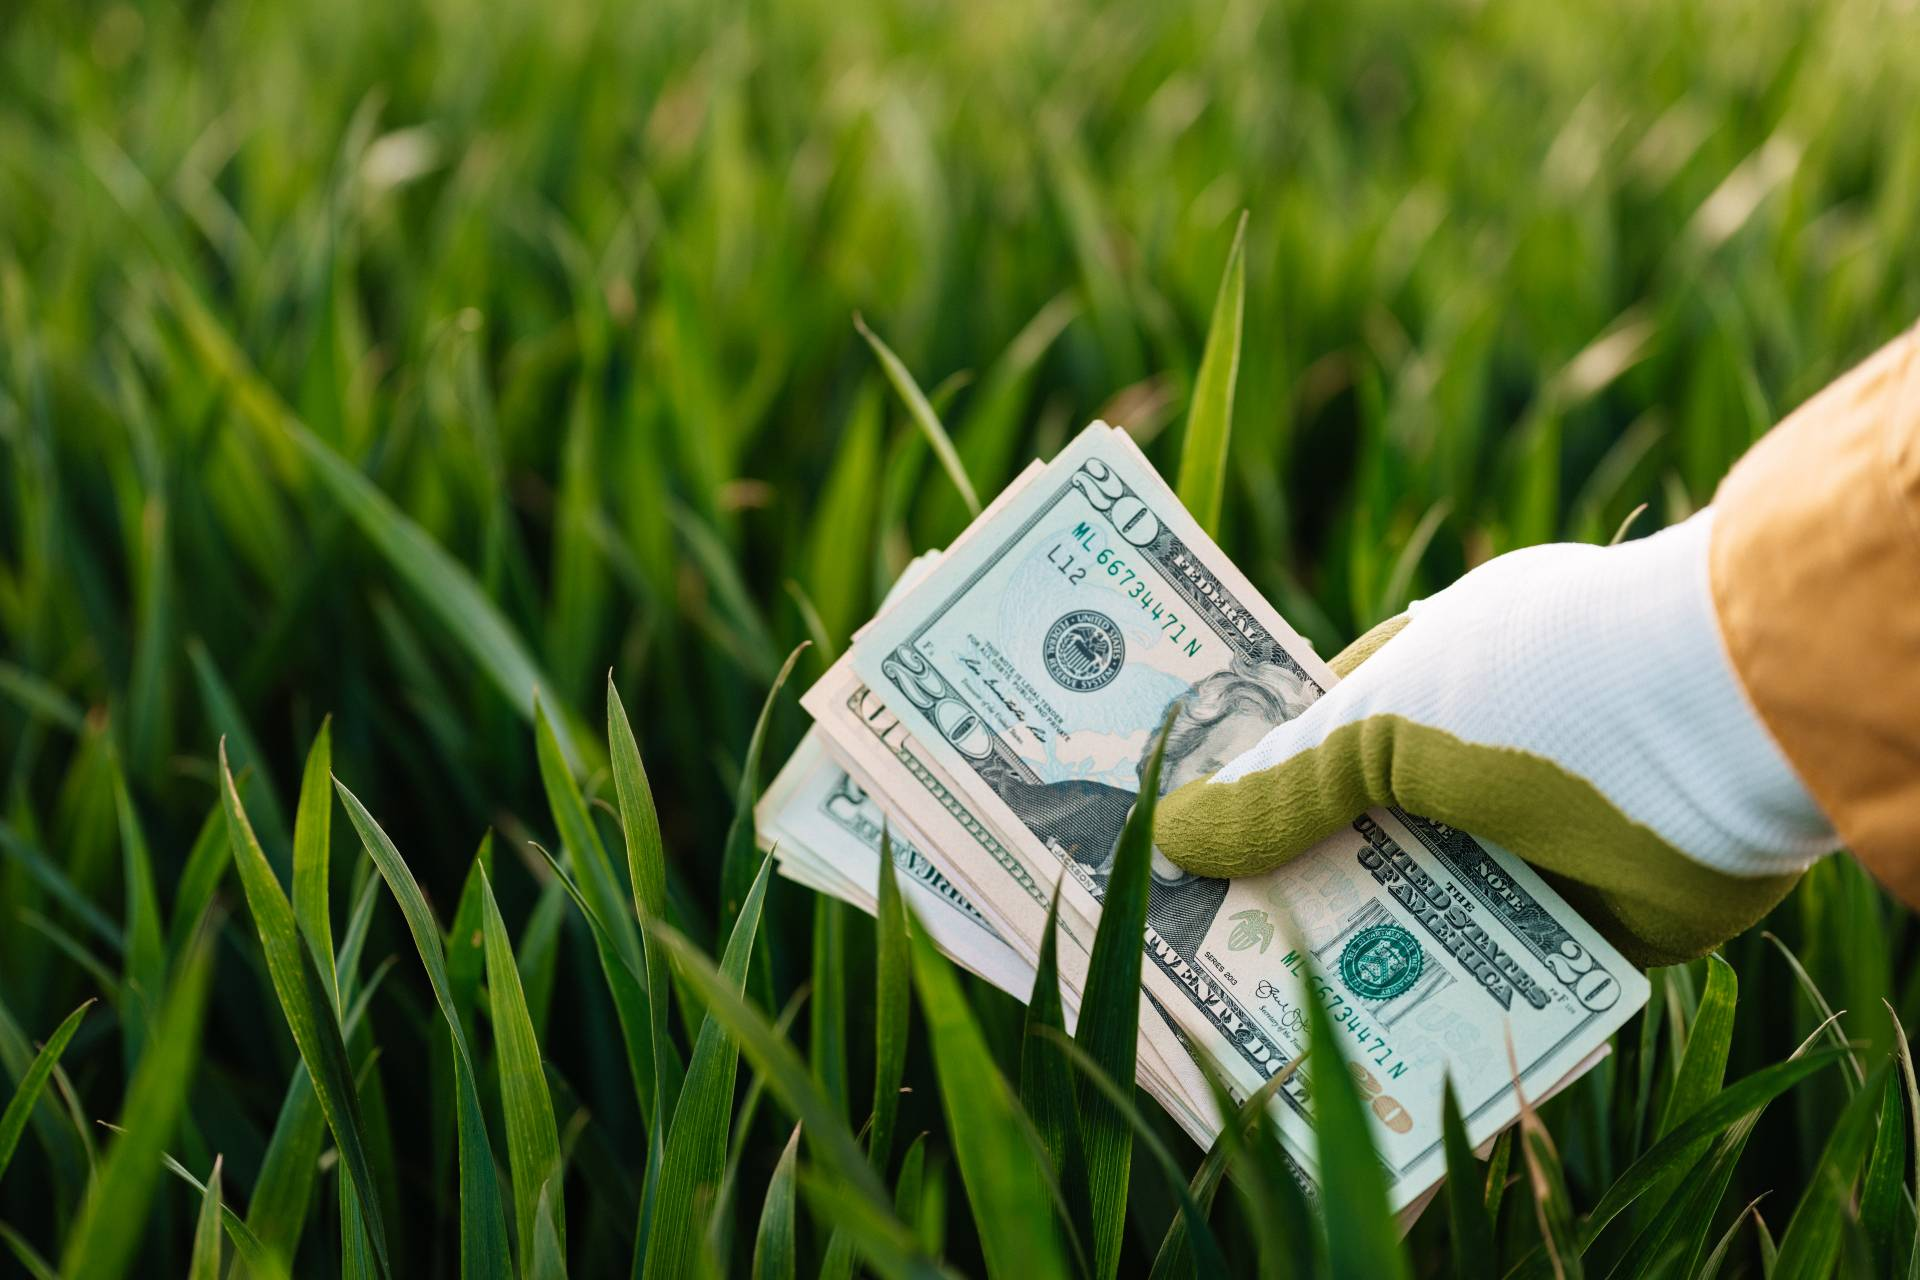 Many business owners confuse passive income for get-rich-quick schemes, but most passive income sources will require some investment upfront.